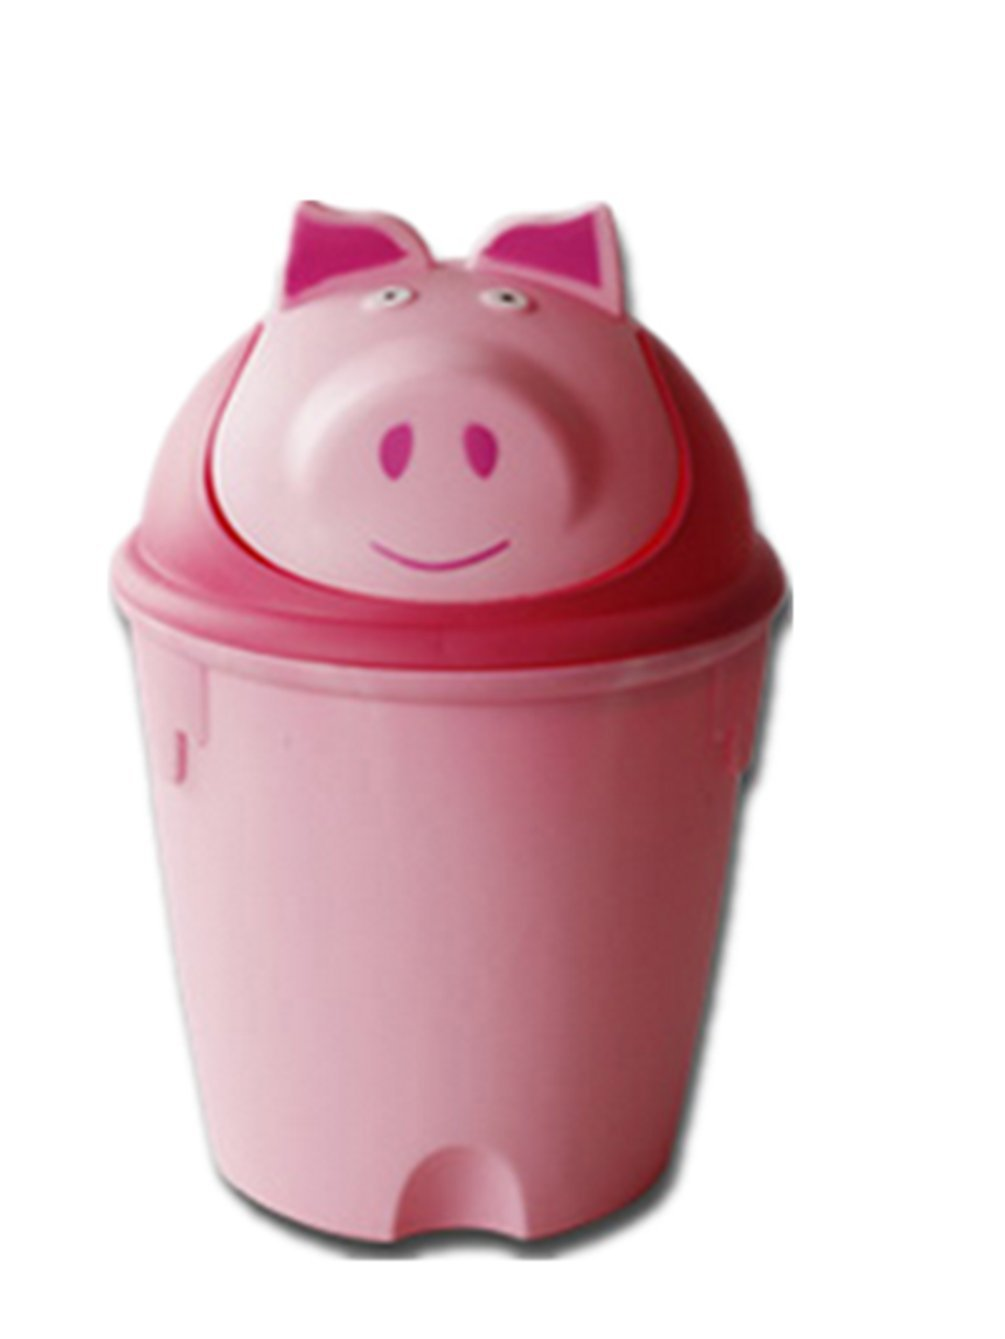 Amazon.com: Moolecole Creative Cute Pink Pig Plastic Trash Bin Waste Bin  Table Office Desk Mini Dustbin Trash Can: Home U0026 Kitchen